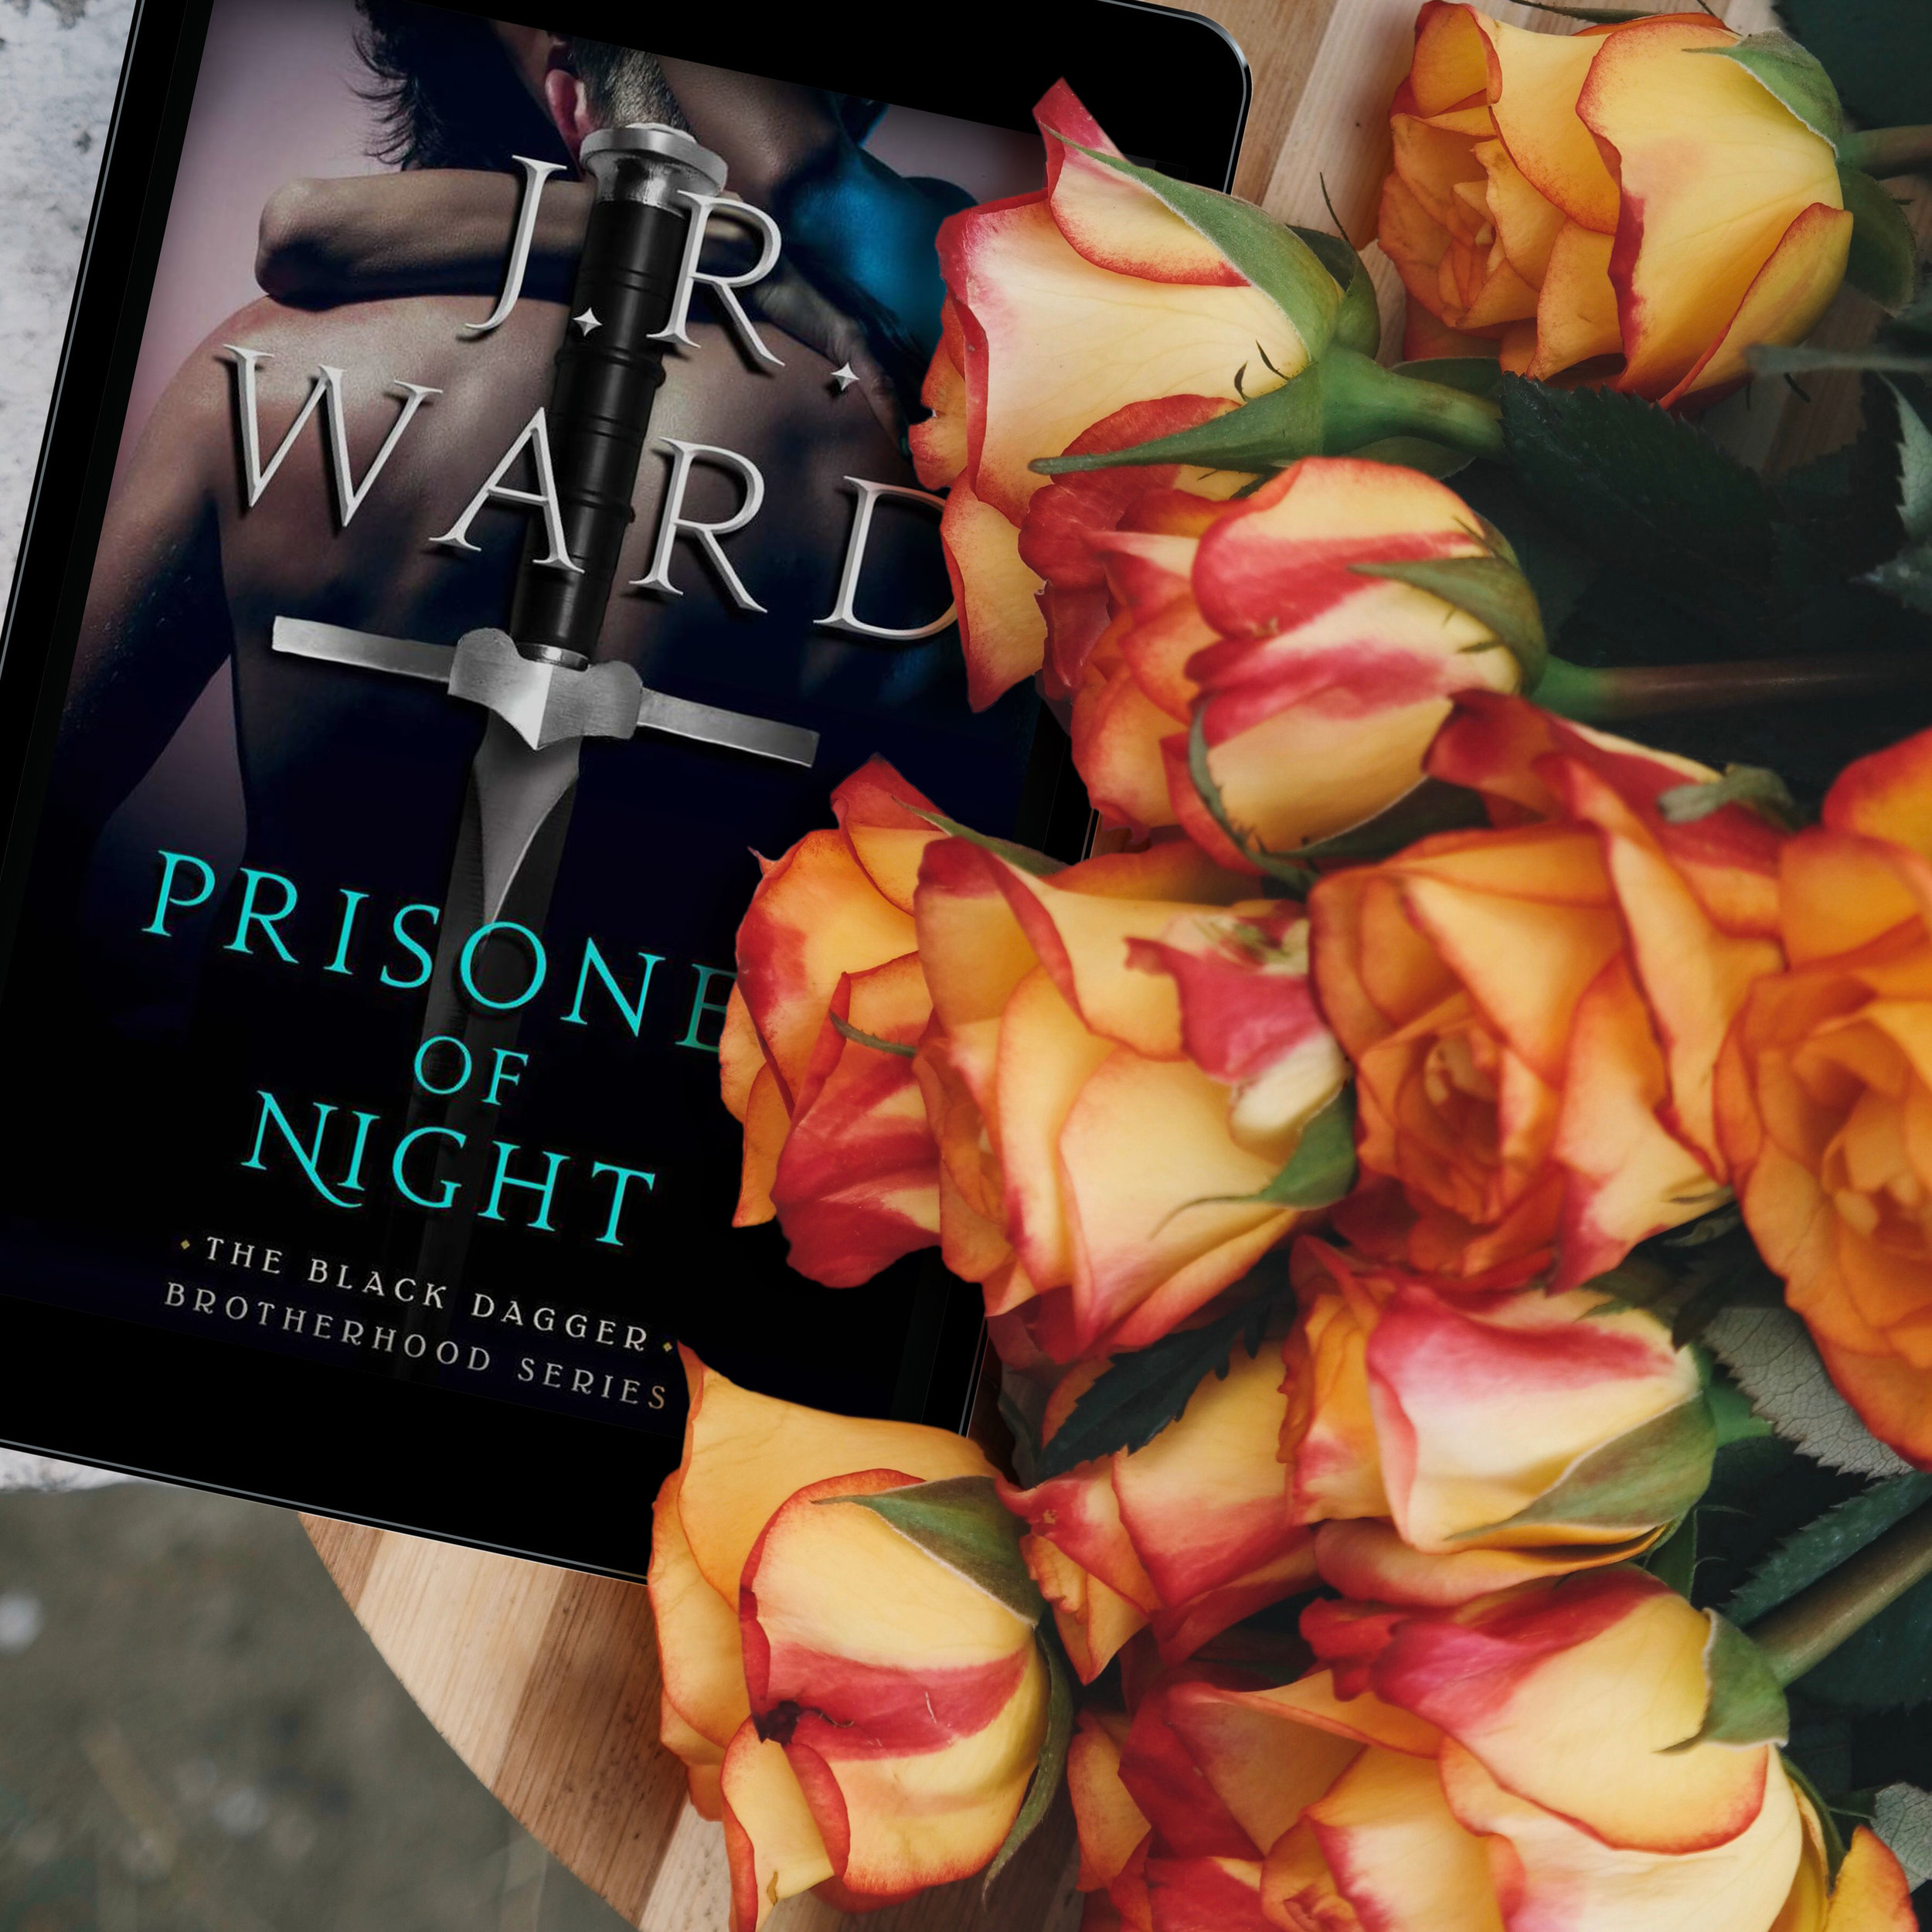 Excerpt of J.R. Ward's PRISONER OF NIGHT